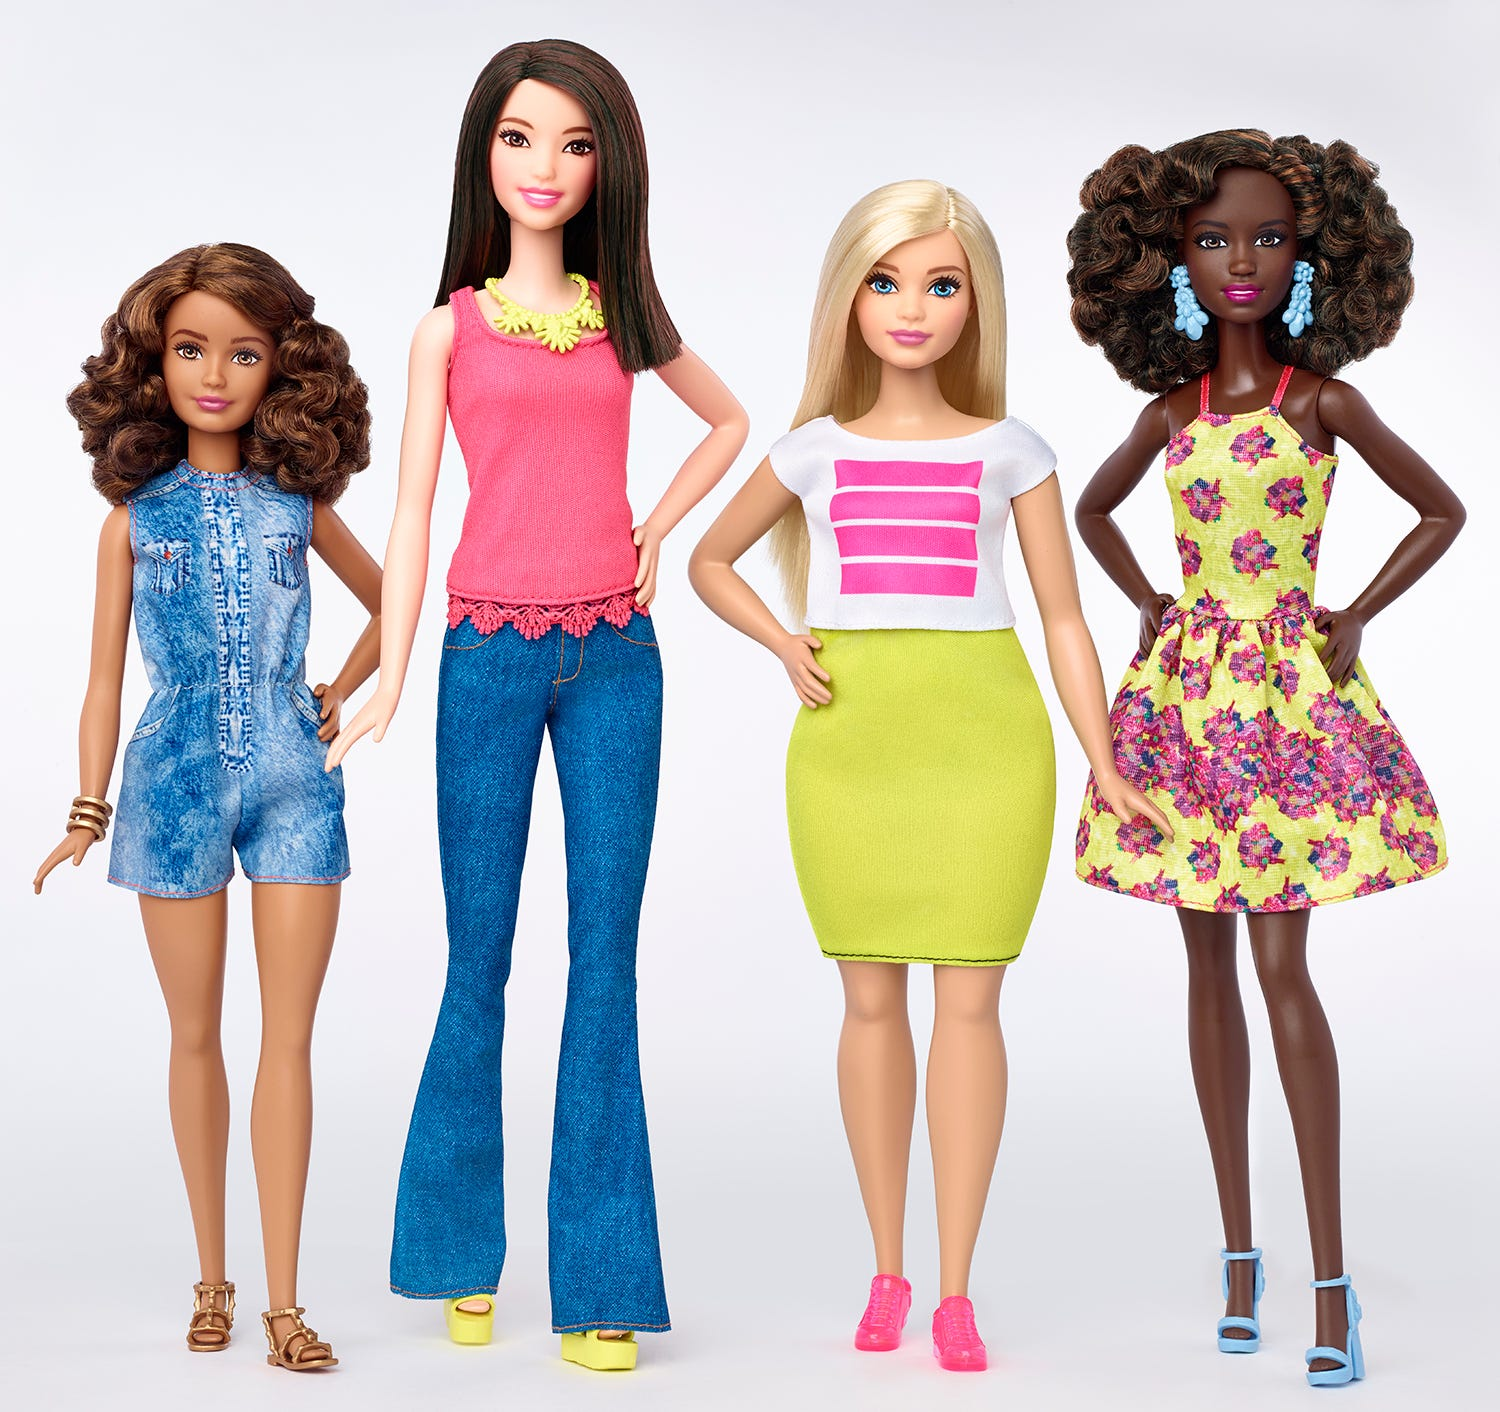 Fat barbie and ken images 556